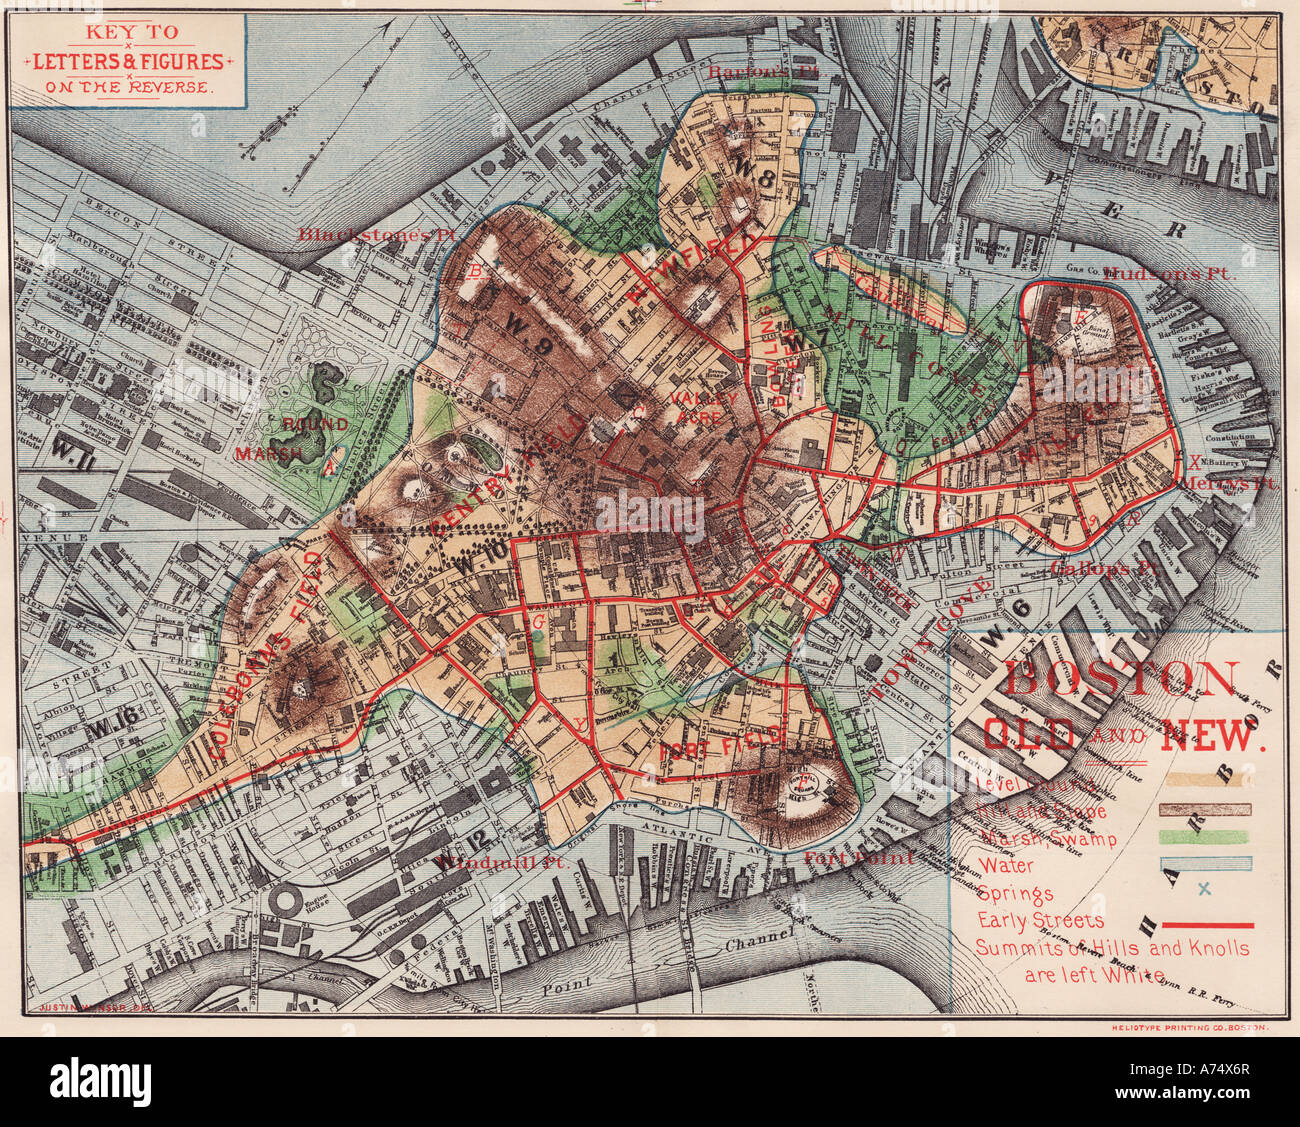 old maps of boston lincolnshire Old Map Of Boston High Resolution Stock Photography And Images Alamy old maps of boston lincolnshire